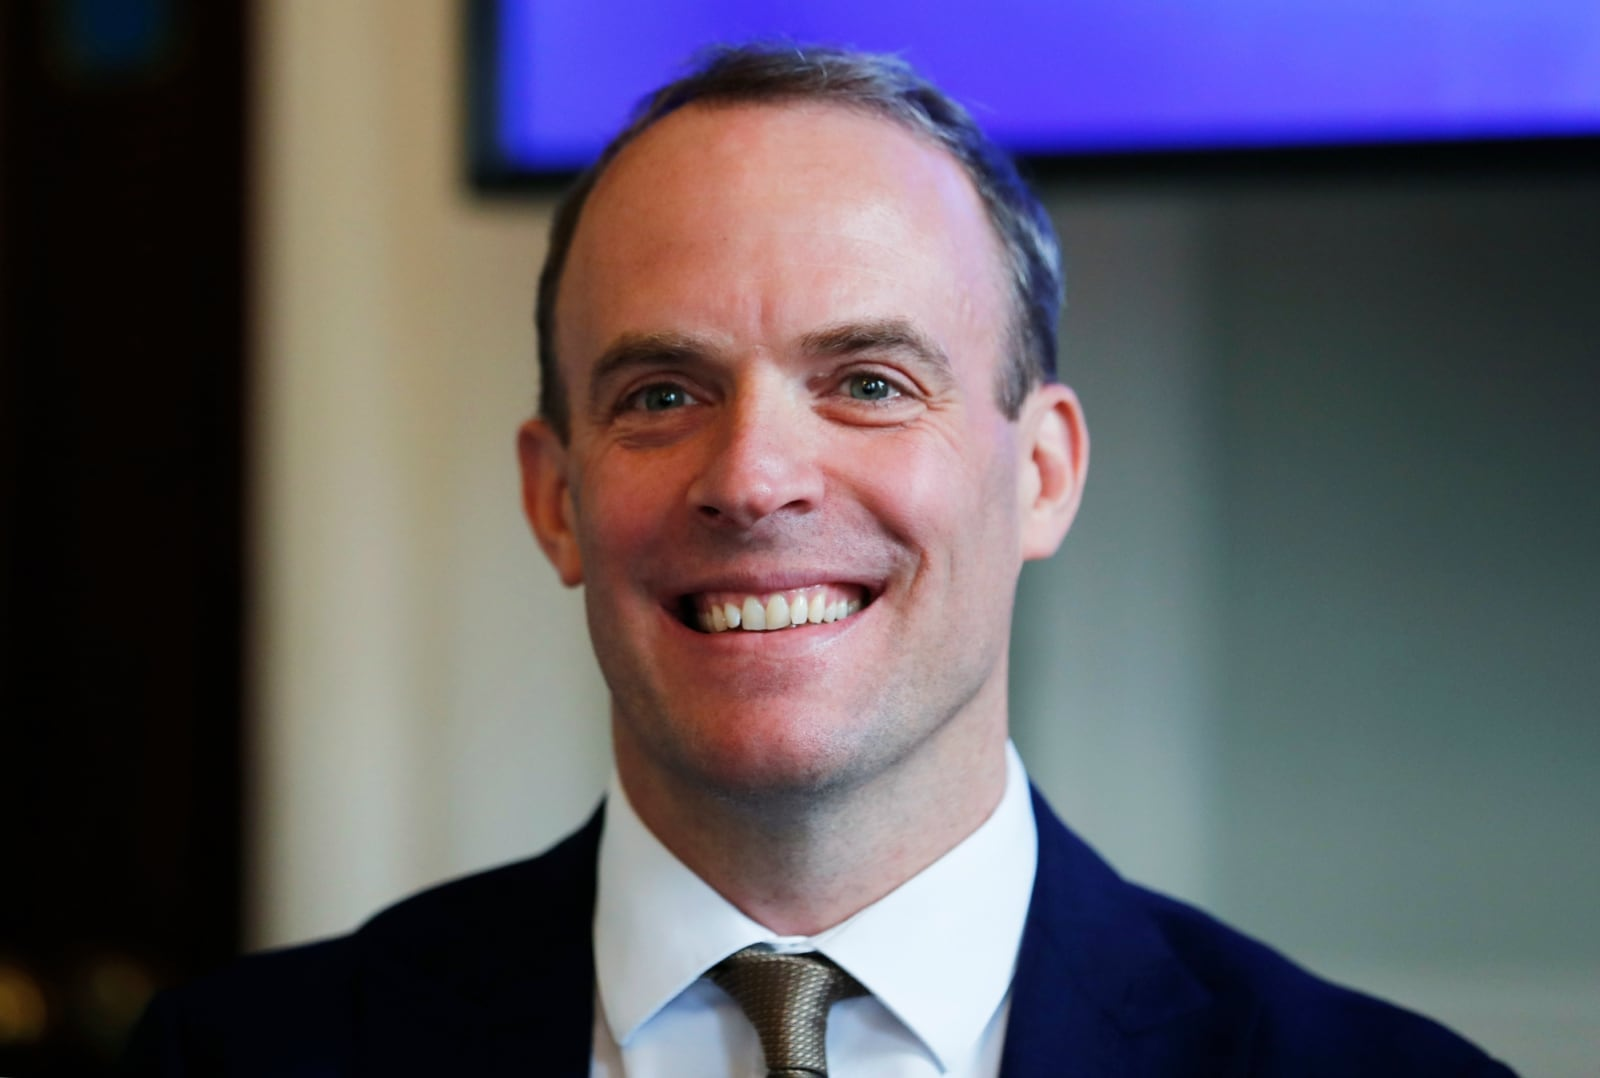 "DOMINIC RAAB, 44. Britain's former Brexit minister quit May's government last year in protest at her draft exit agreement, saying it did not match the promises the Conservative Party made at a 2017 election. Raab served only five months as head of the Brexit department, having been appointed in July. He was seen as a relative newcomer to the top table of government but had served in junior ministerial roles since being elected in 2010. Raab campaigned for Brexit ahead of the referendum and is a black belt in karate. Asked earlier this month if he would like to be prime minister he said: ""Never say never."""